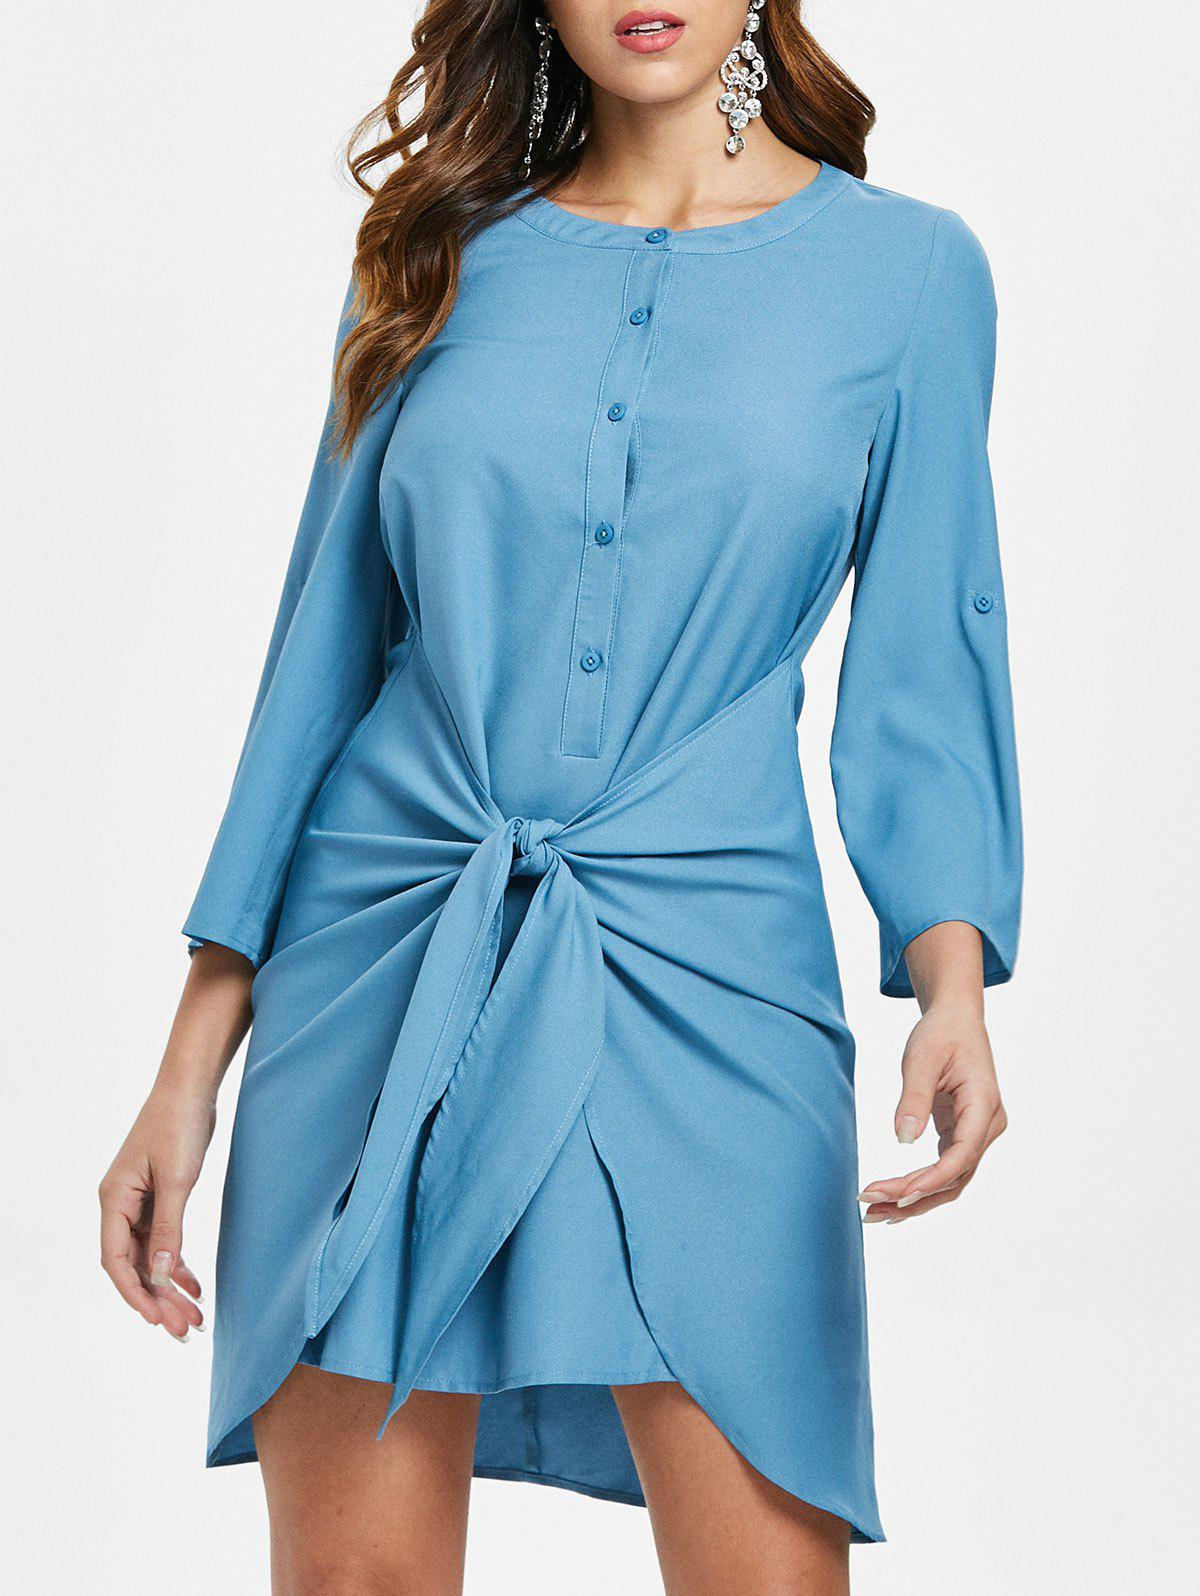 Chic Knotted Overlap Shirt Dress